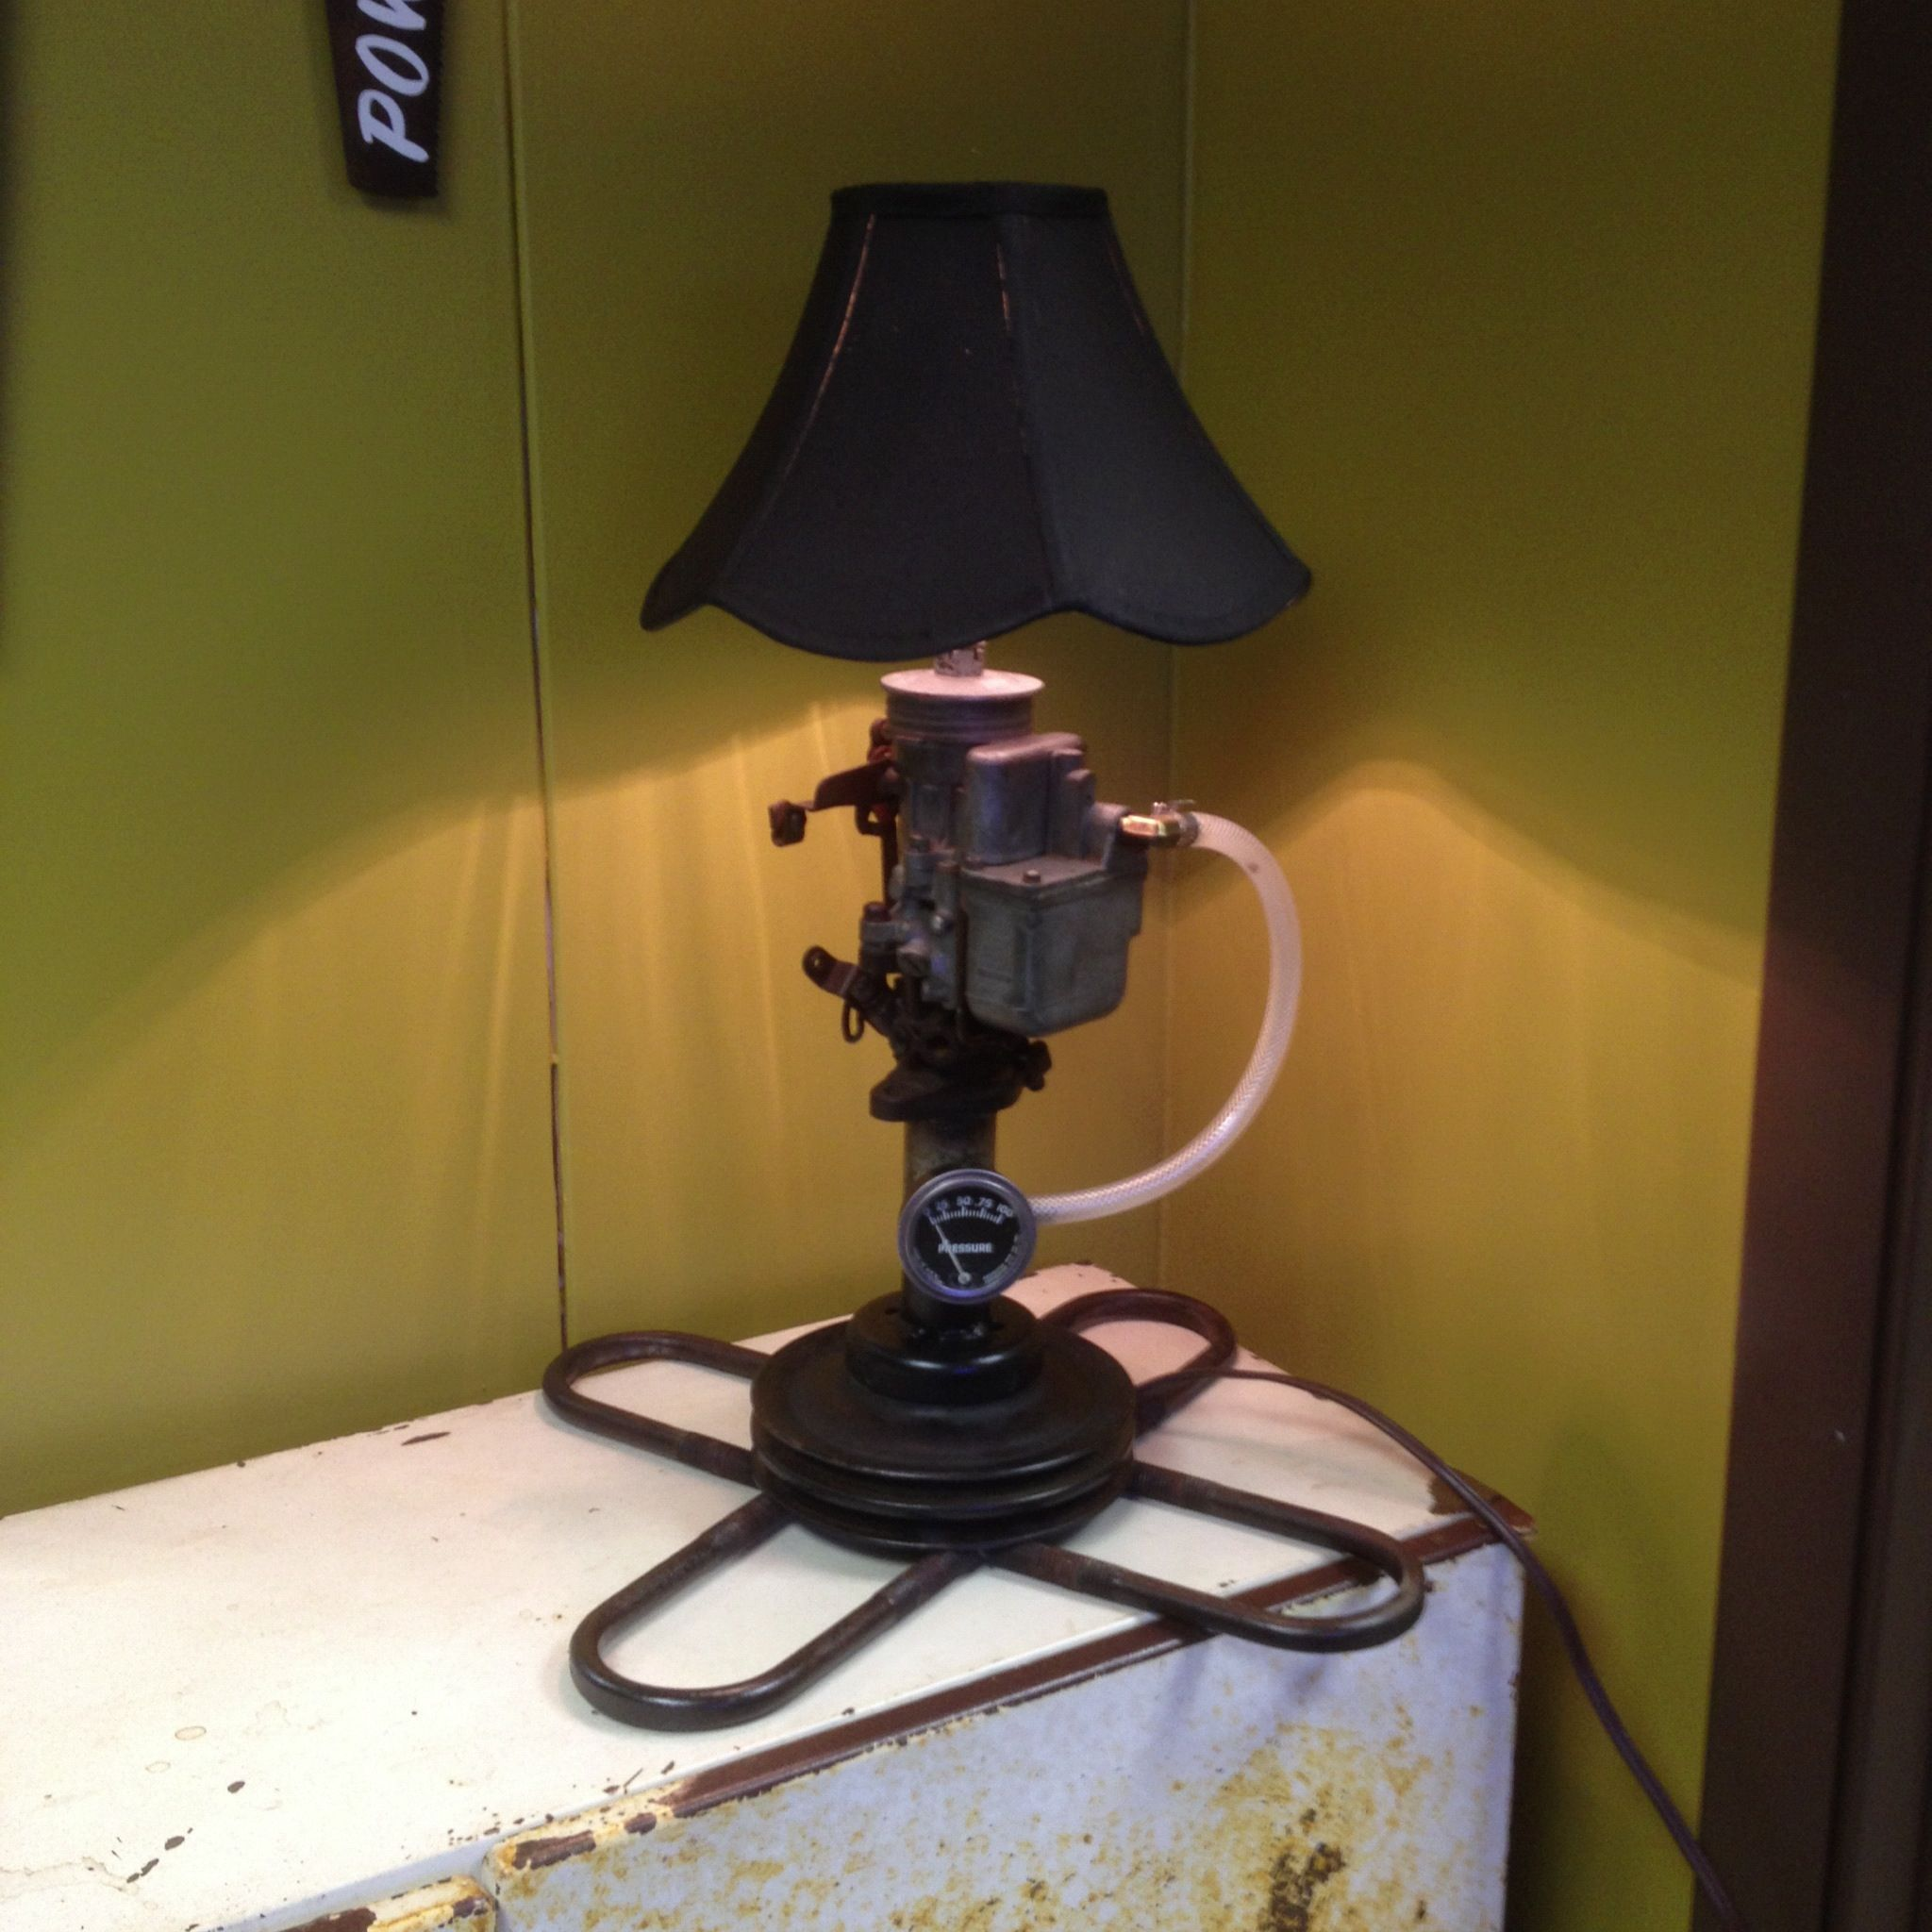 Tractor Bedside Lamp : Lamp made of old car parts kevin corder art work